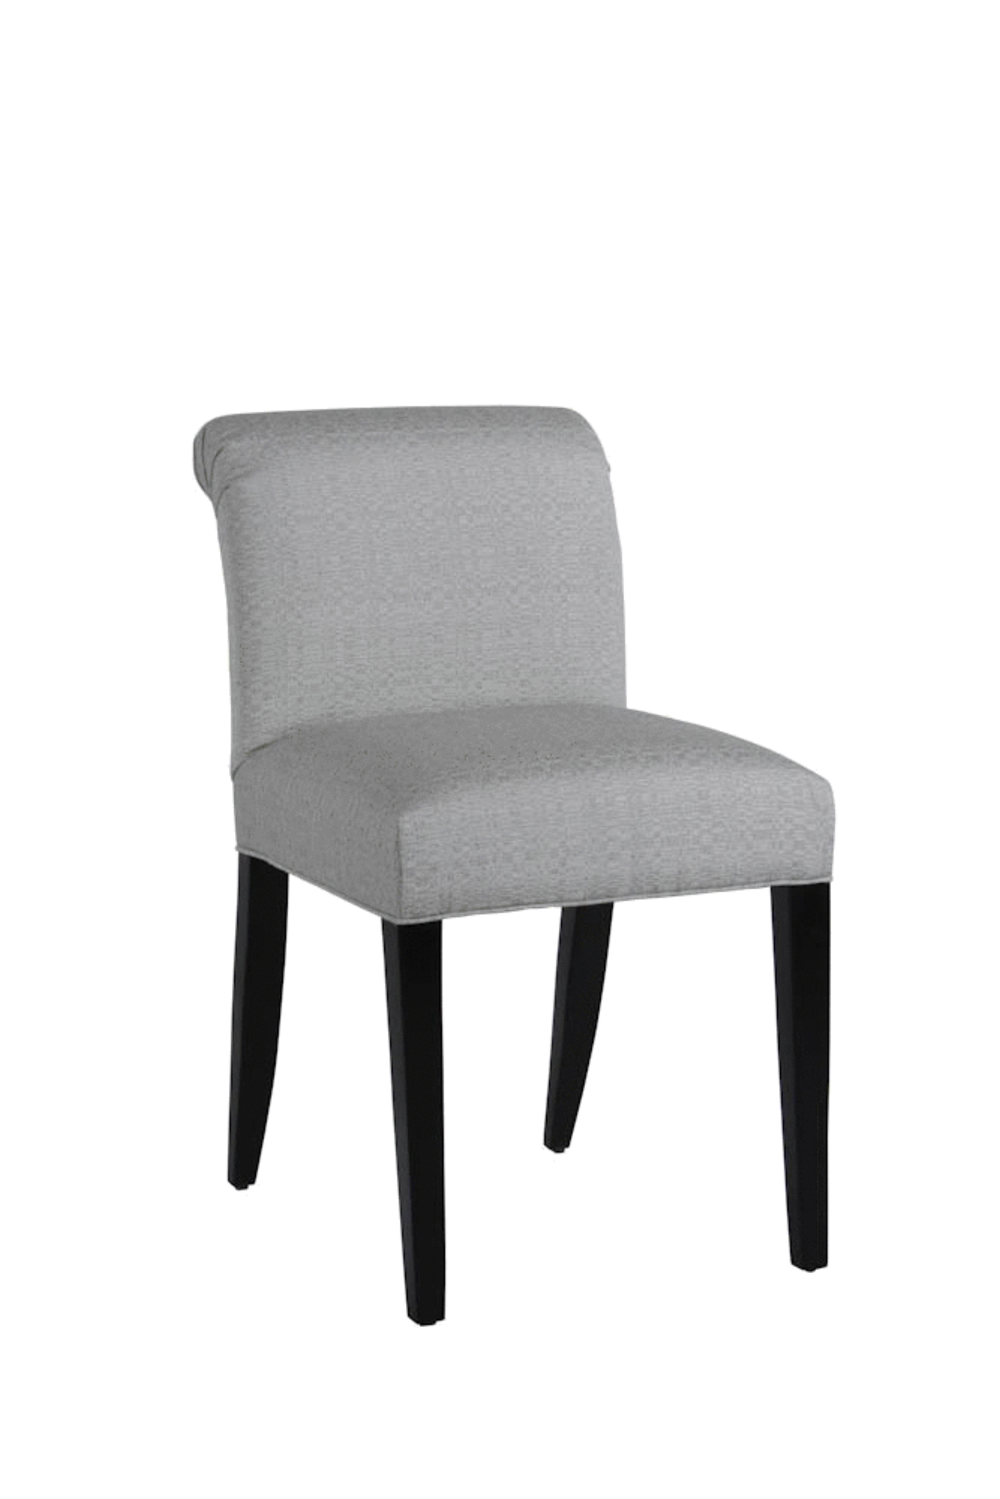 Cox Manufacturing - Stool